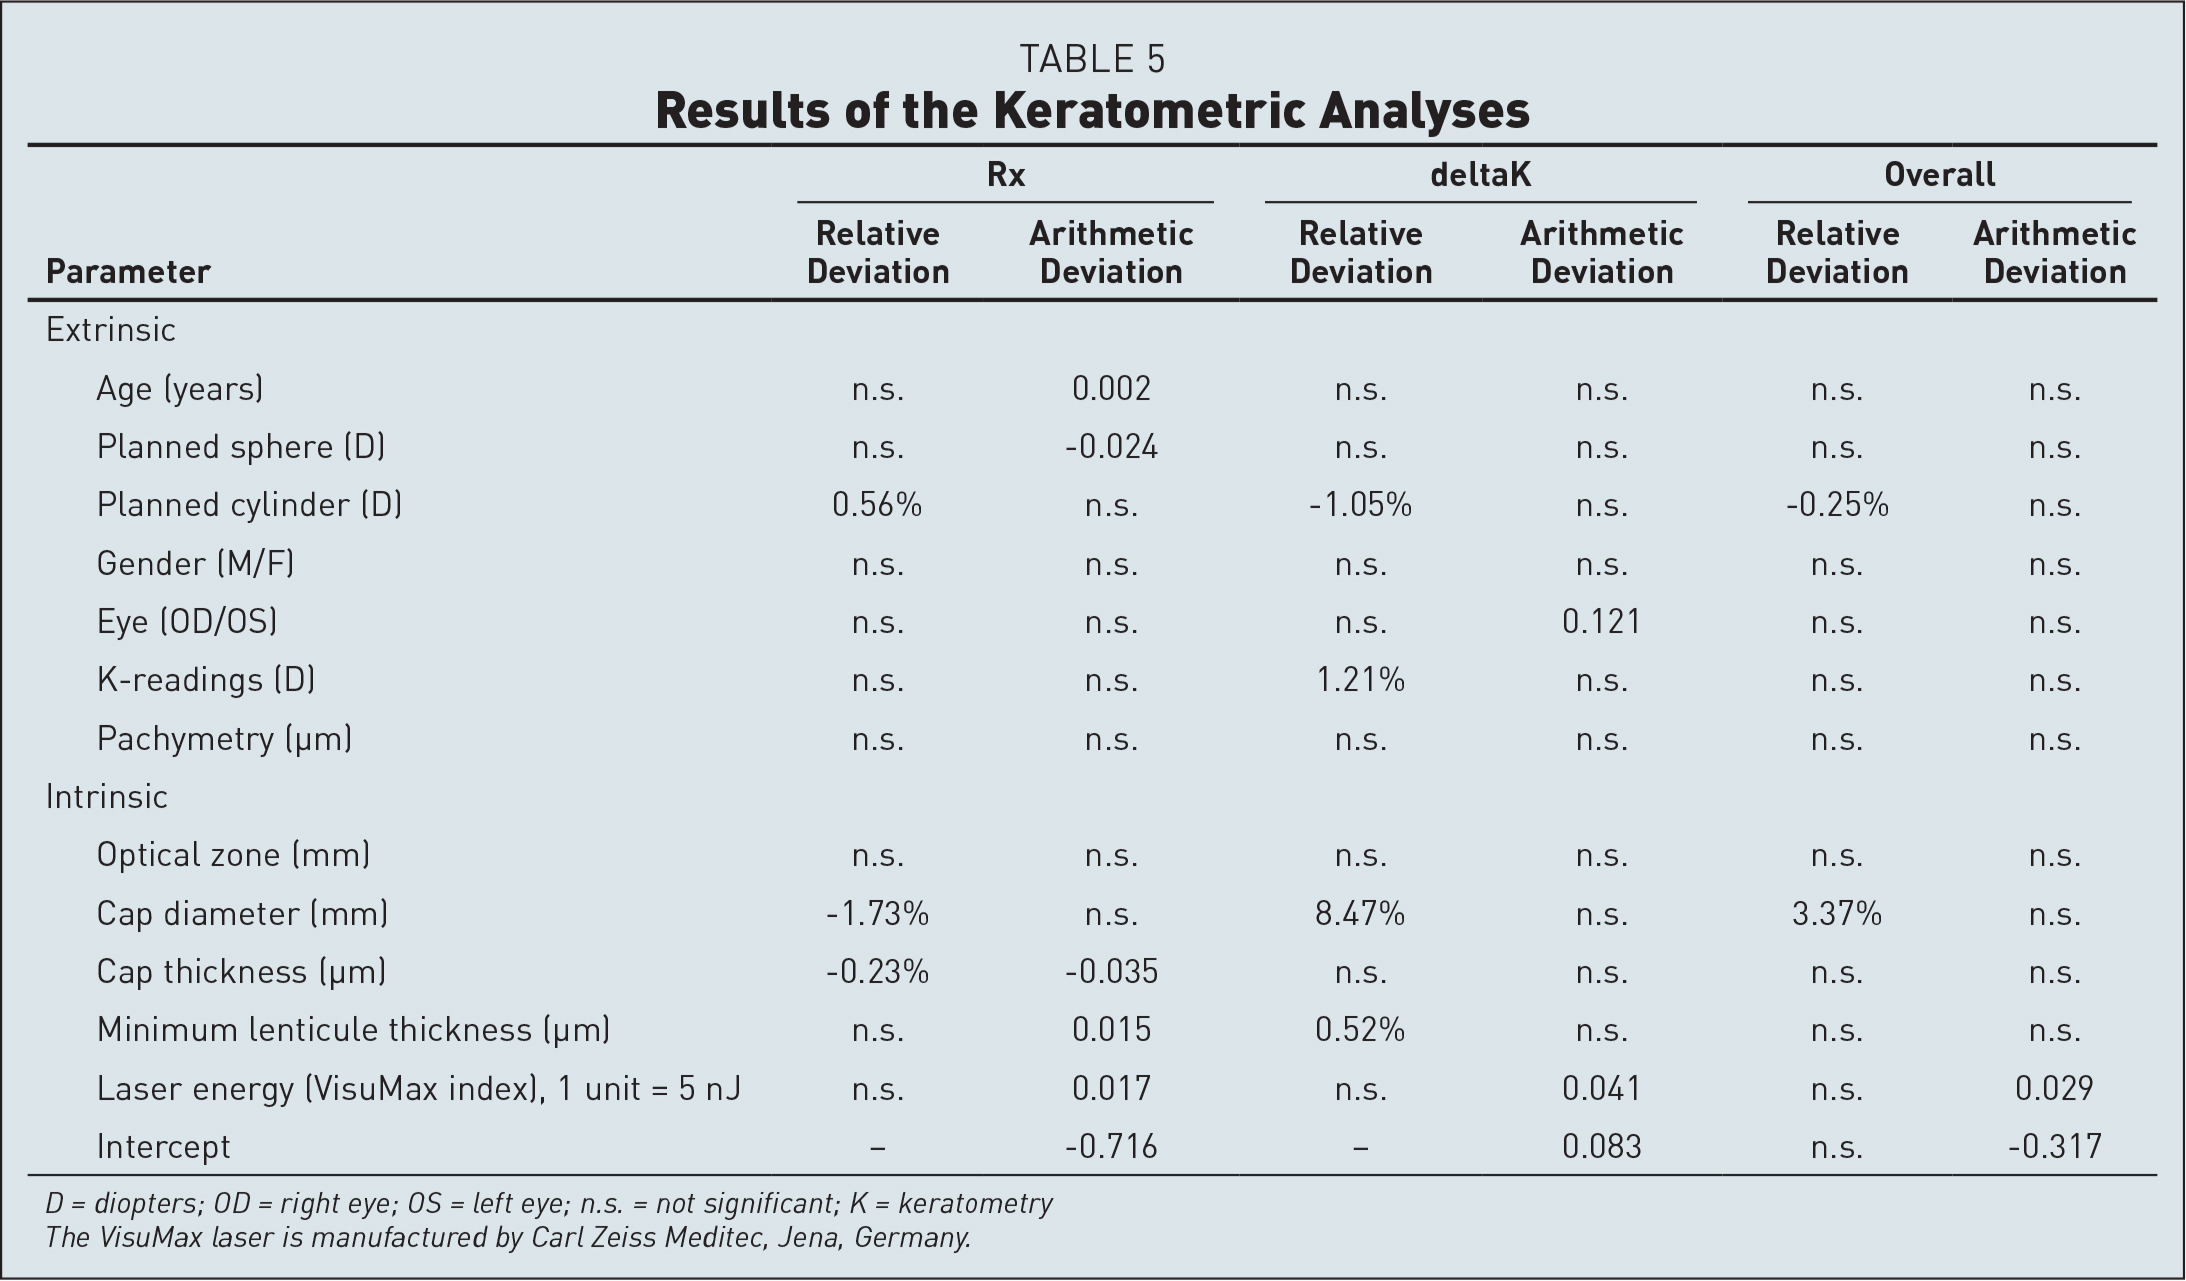 Results of the Keratometric Analyses